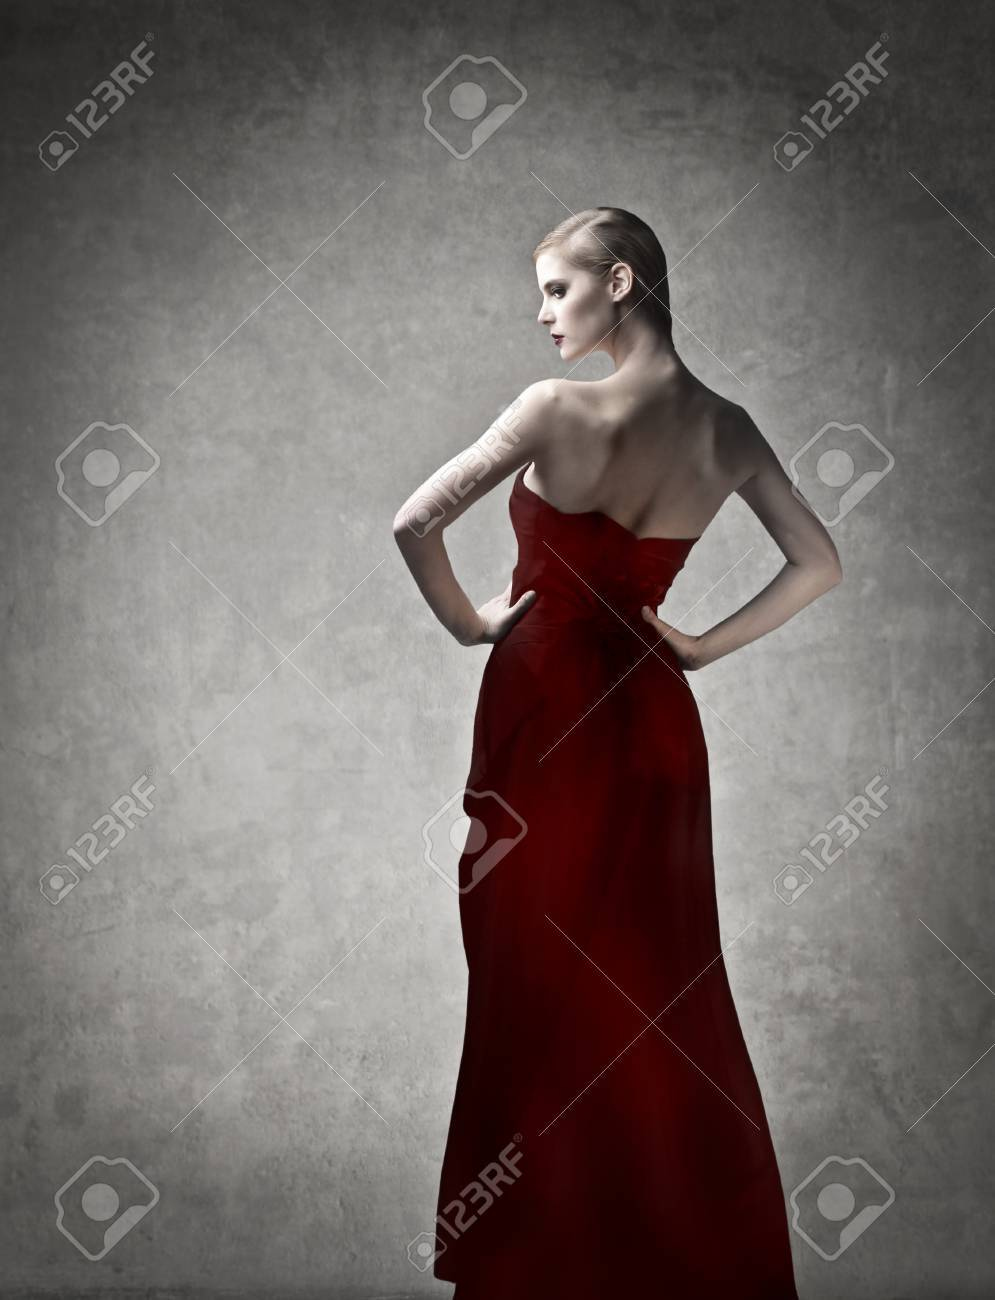 Beautiful Elegant Woman In Red Evening Gown Stock Photo, Picture And ...